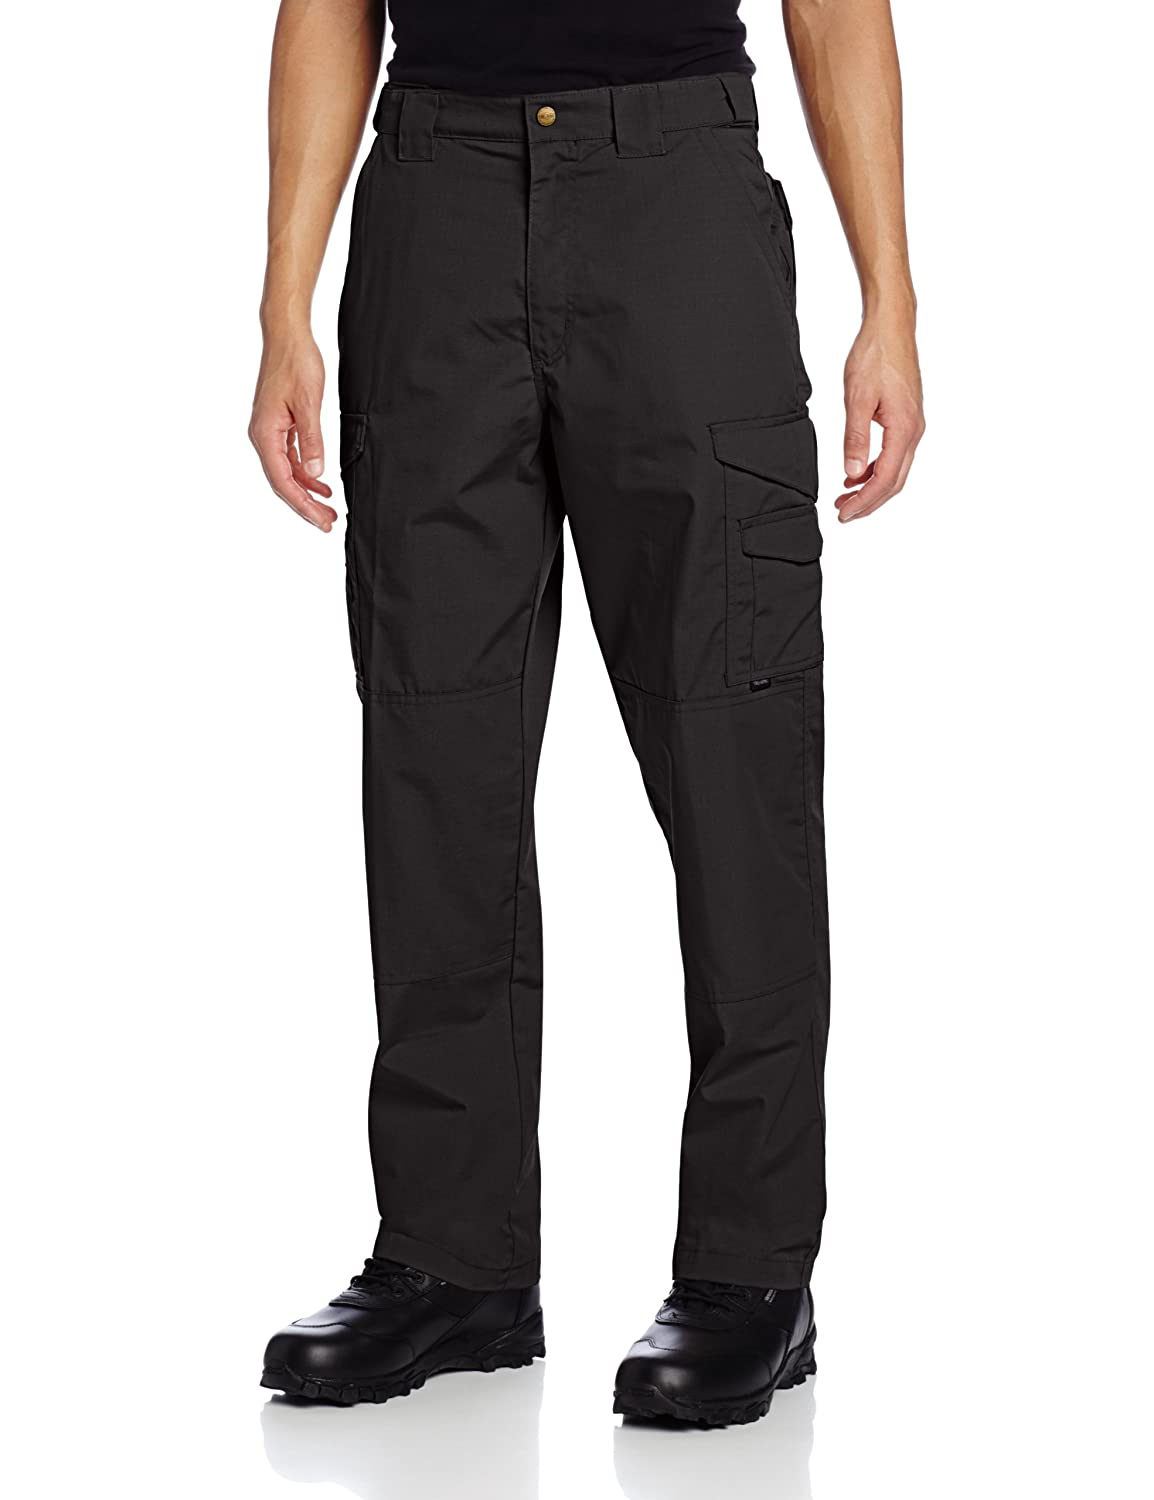 what-are-the-best-tactical-pants-for-the-outdoors